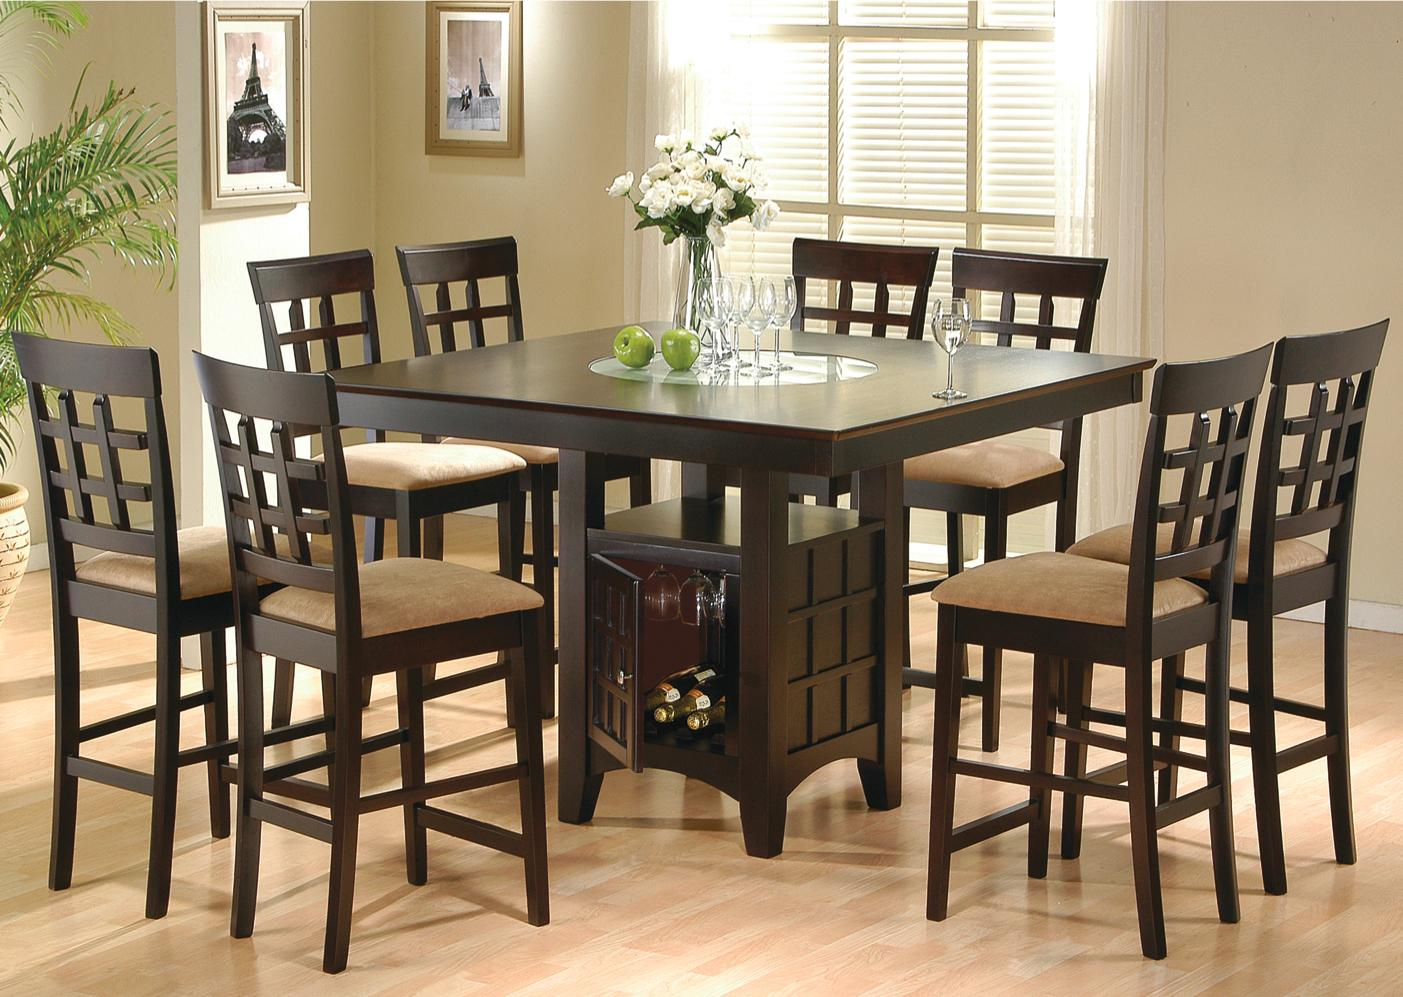 Coaster Mix Match 9 Piece Counter Height Dining Set Value City Furniture Pub Table And Stool Sets